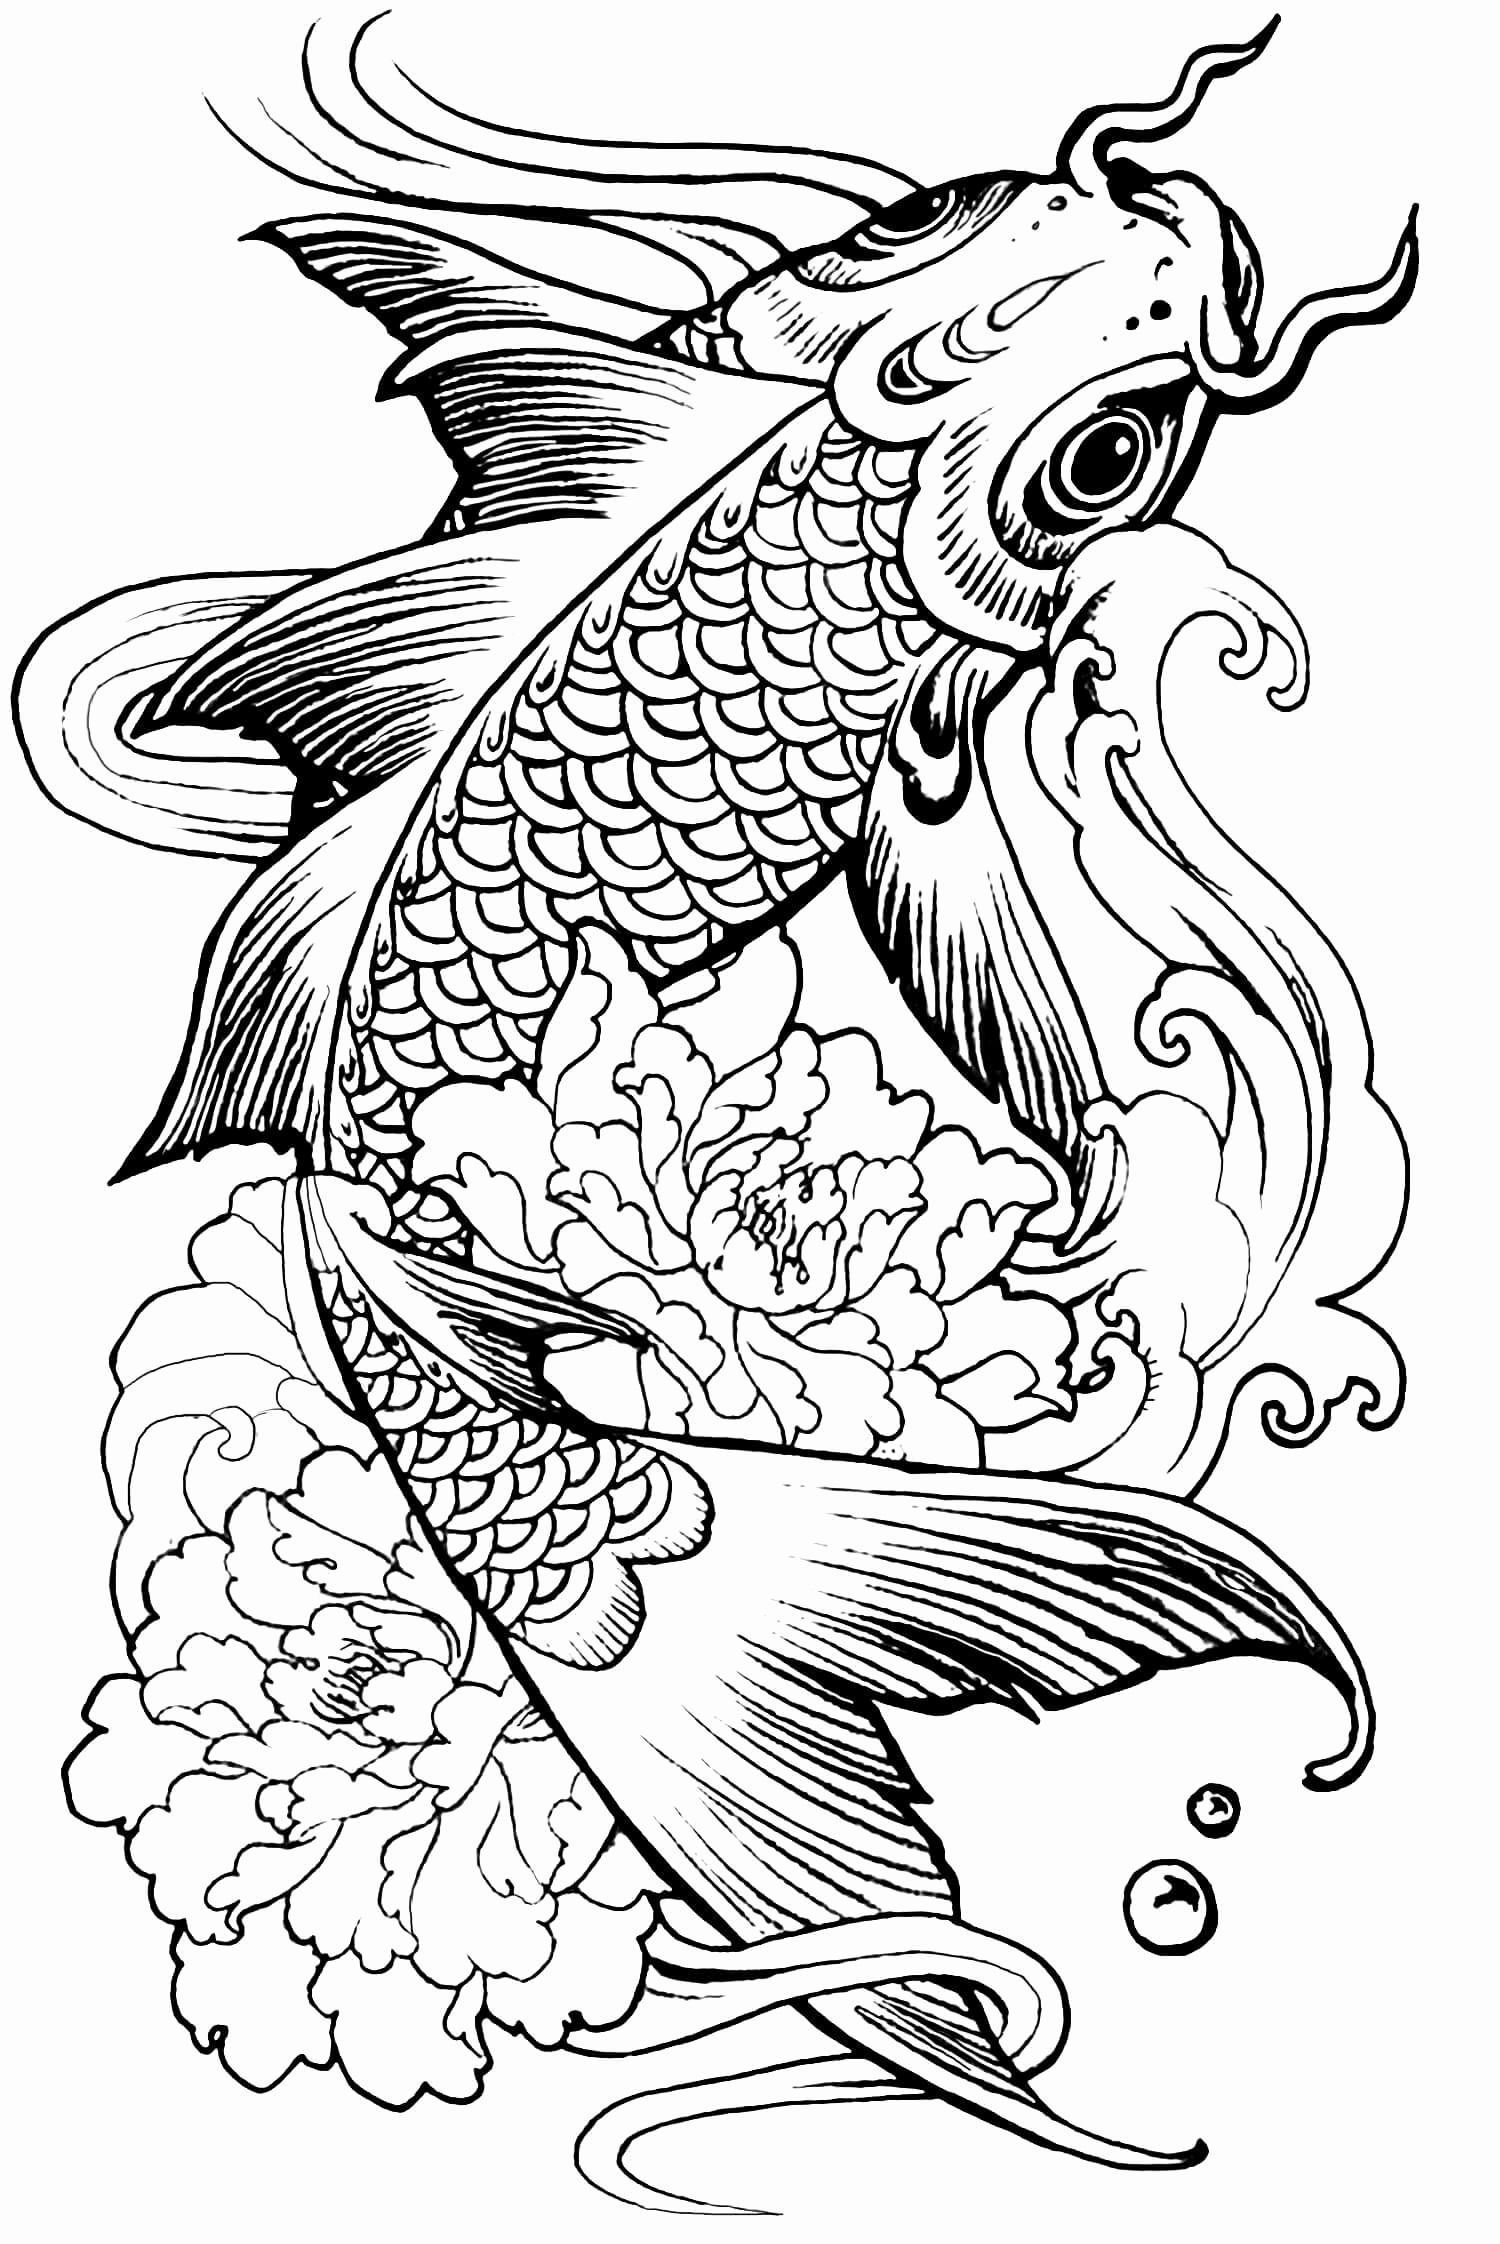 Coloring Pages Hard Animals Elegant Coloring Pages For Adults Difficult Animals 35 Animal Coloring Pages Coloring Pictures Of Animals Fish Coloring Page [ jpg ]